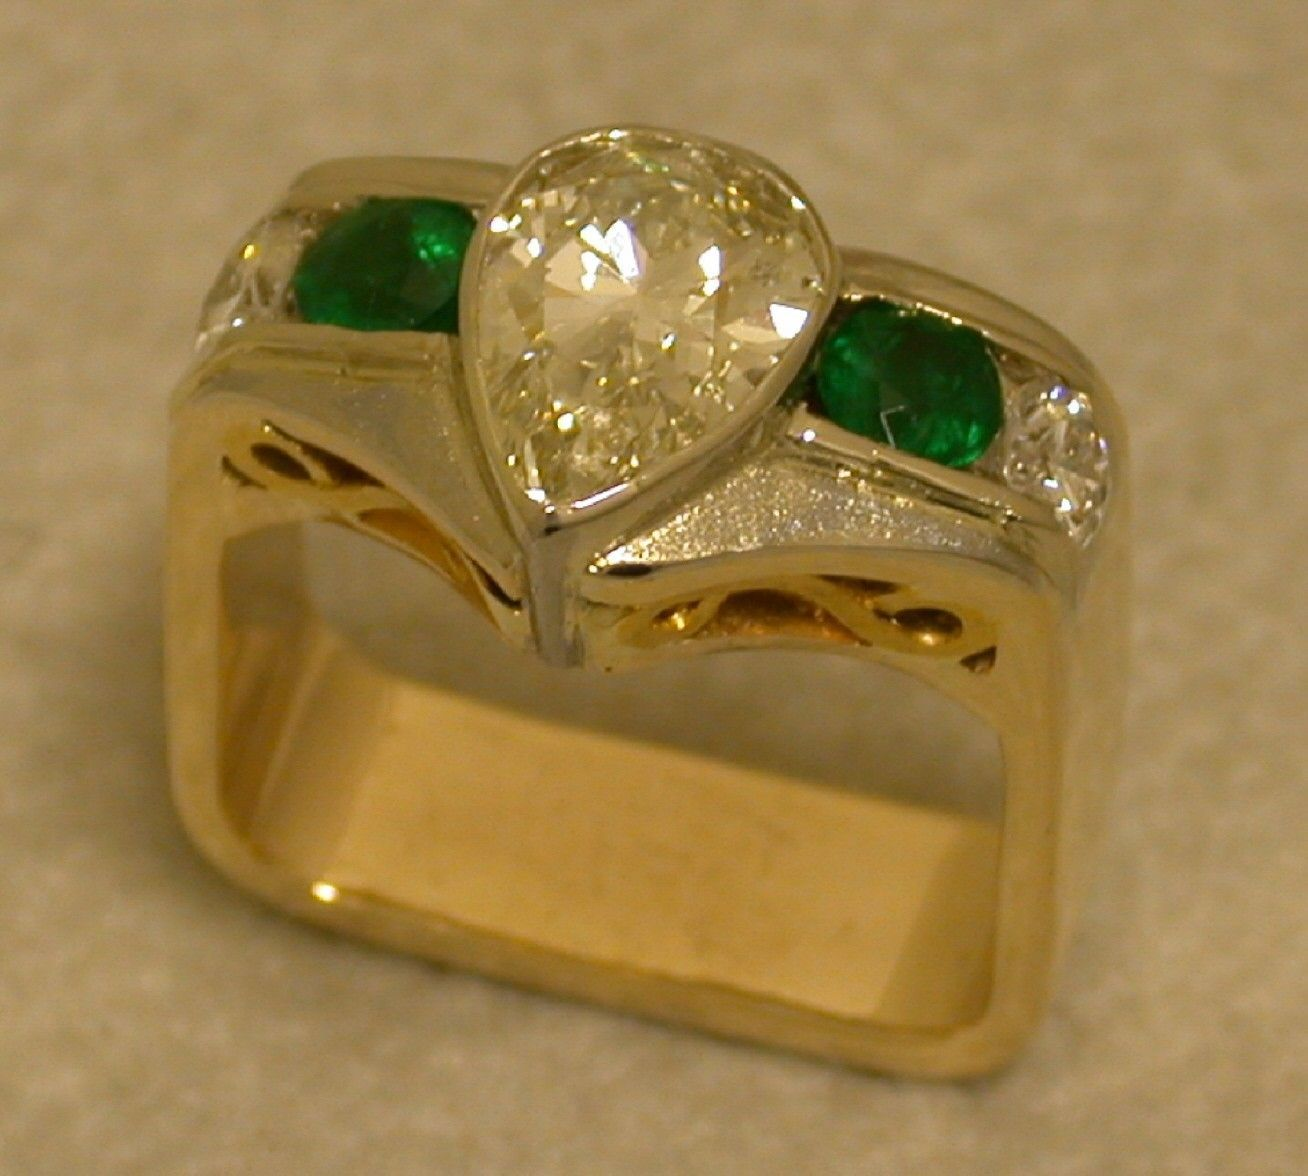 This hand fabricated ring has been crafted from 18kt. white & yellow gold. Set in the center is a 1.75ct. pear shaped diamond, bordered on either side are .50ct. emeralds.